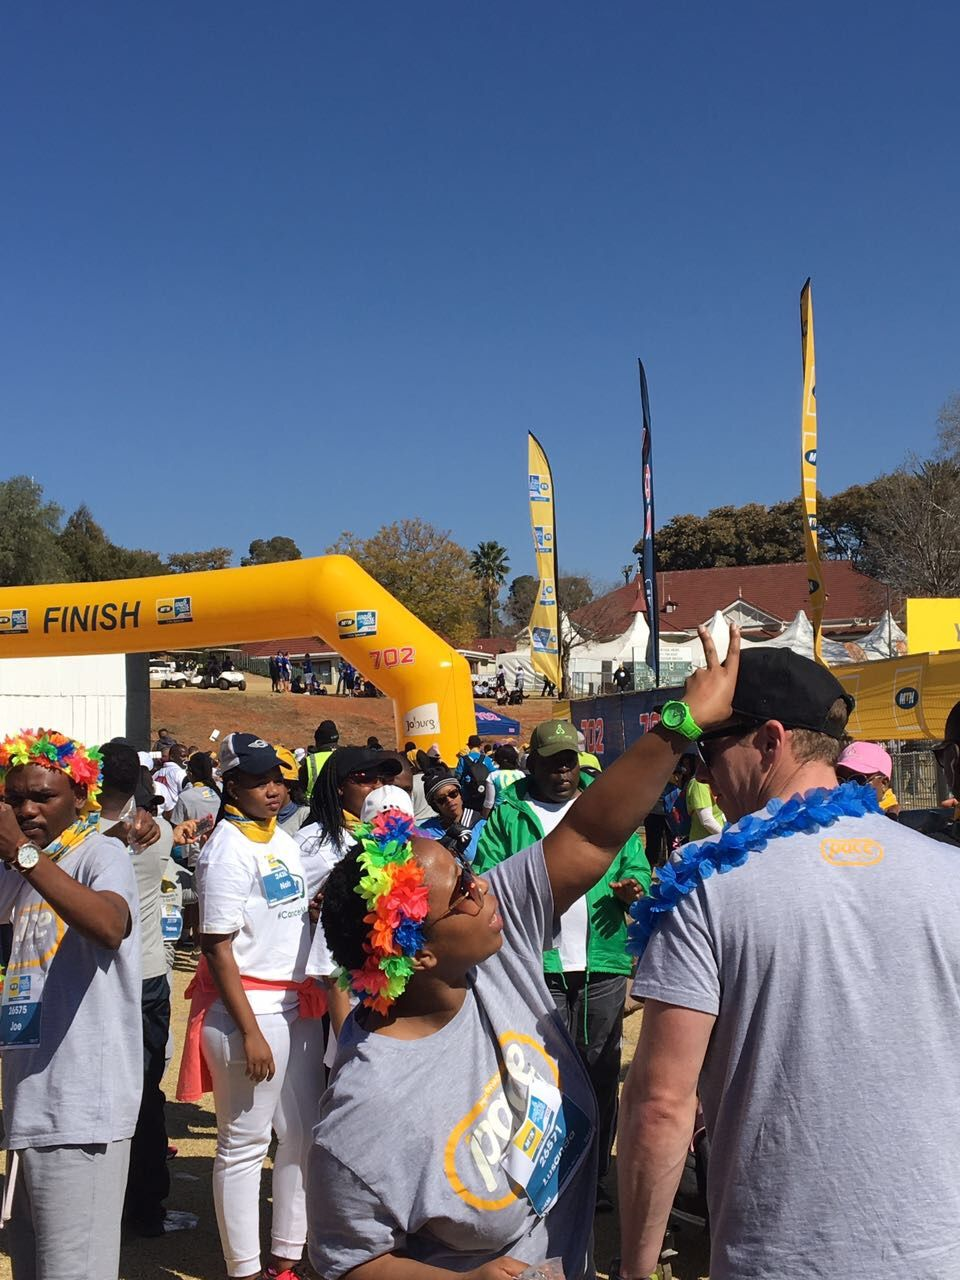 Pace Car Rental Employees doing the MTN702Walk. Awesome